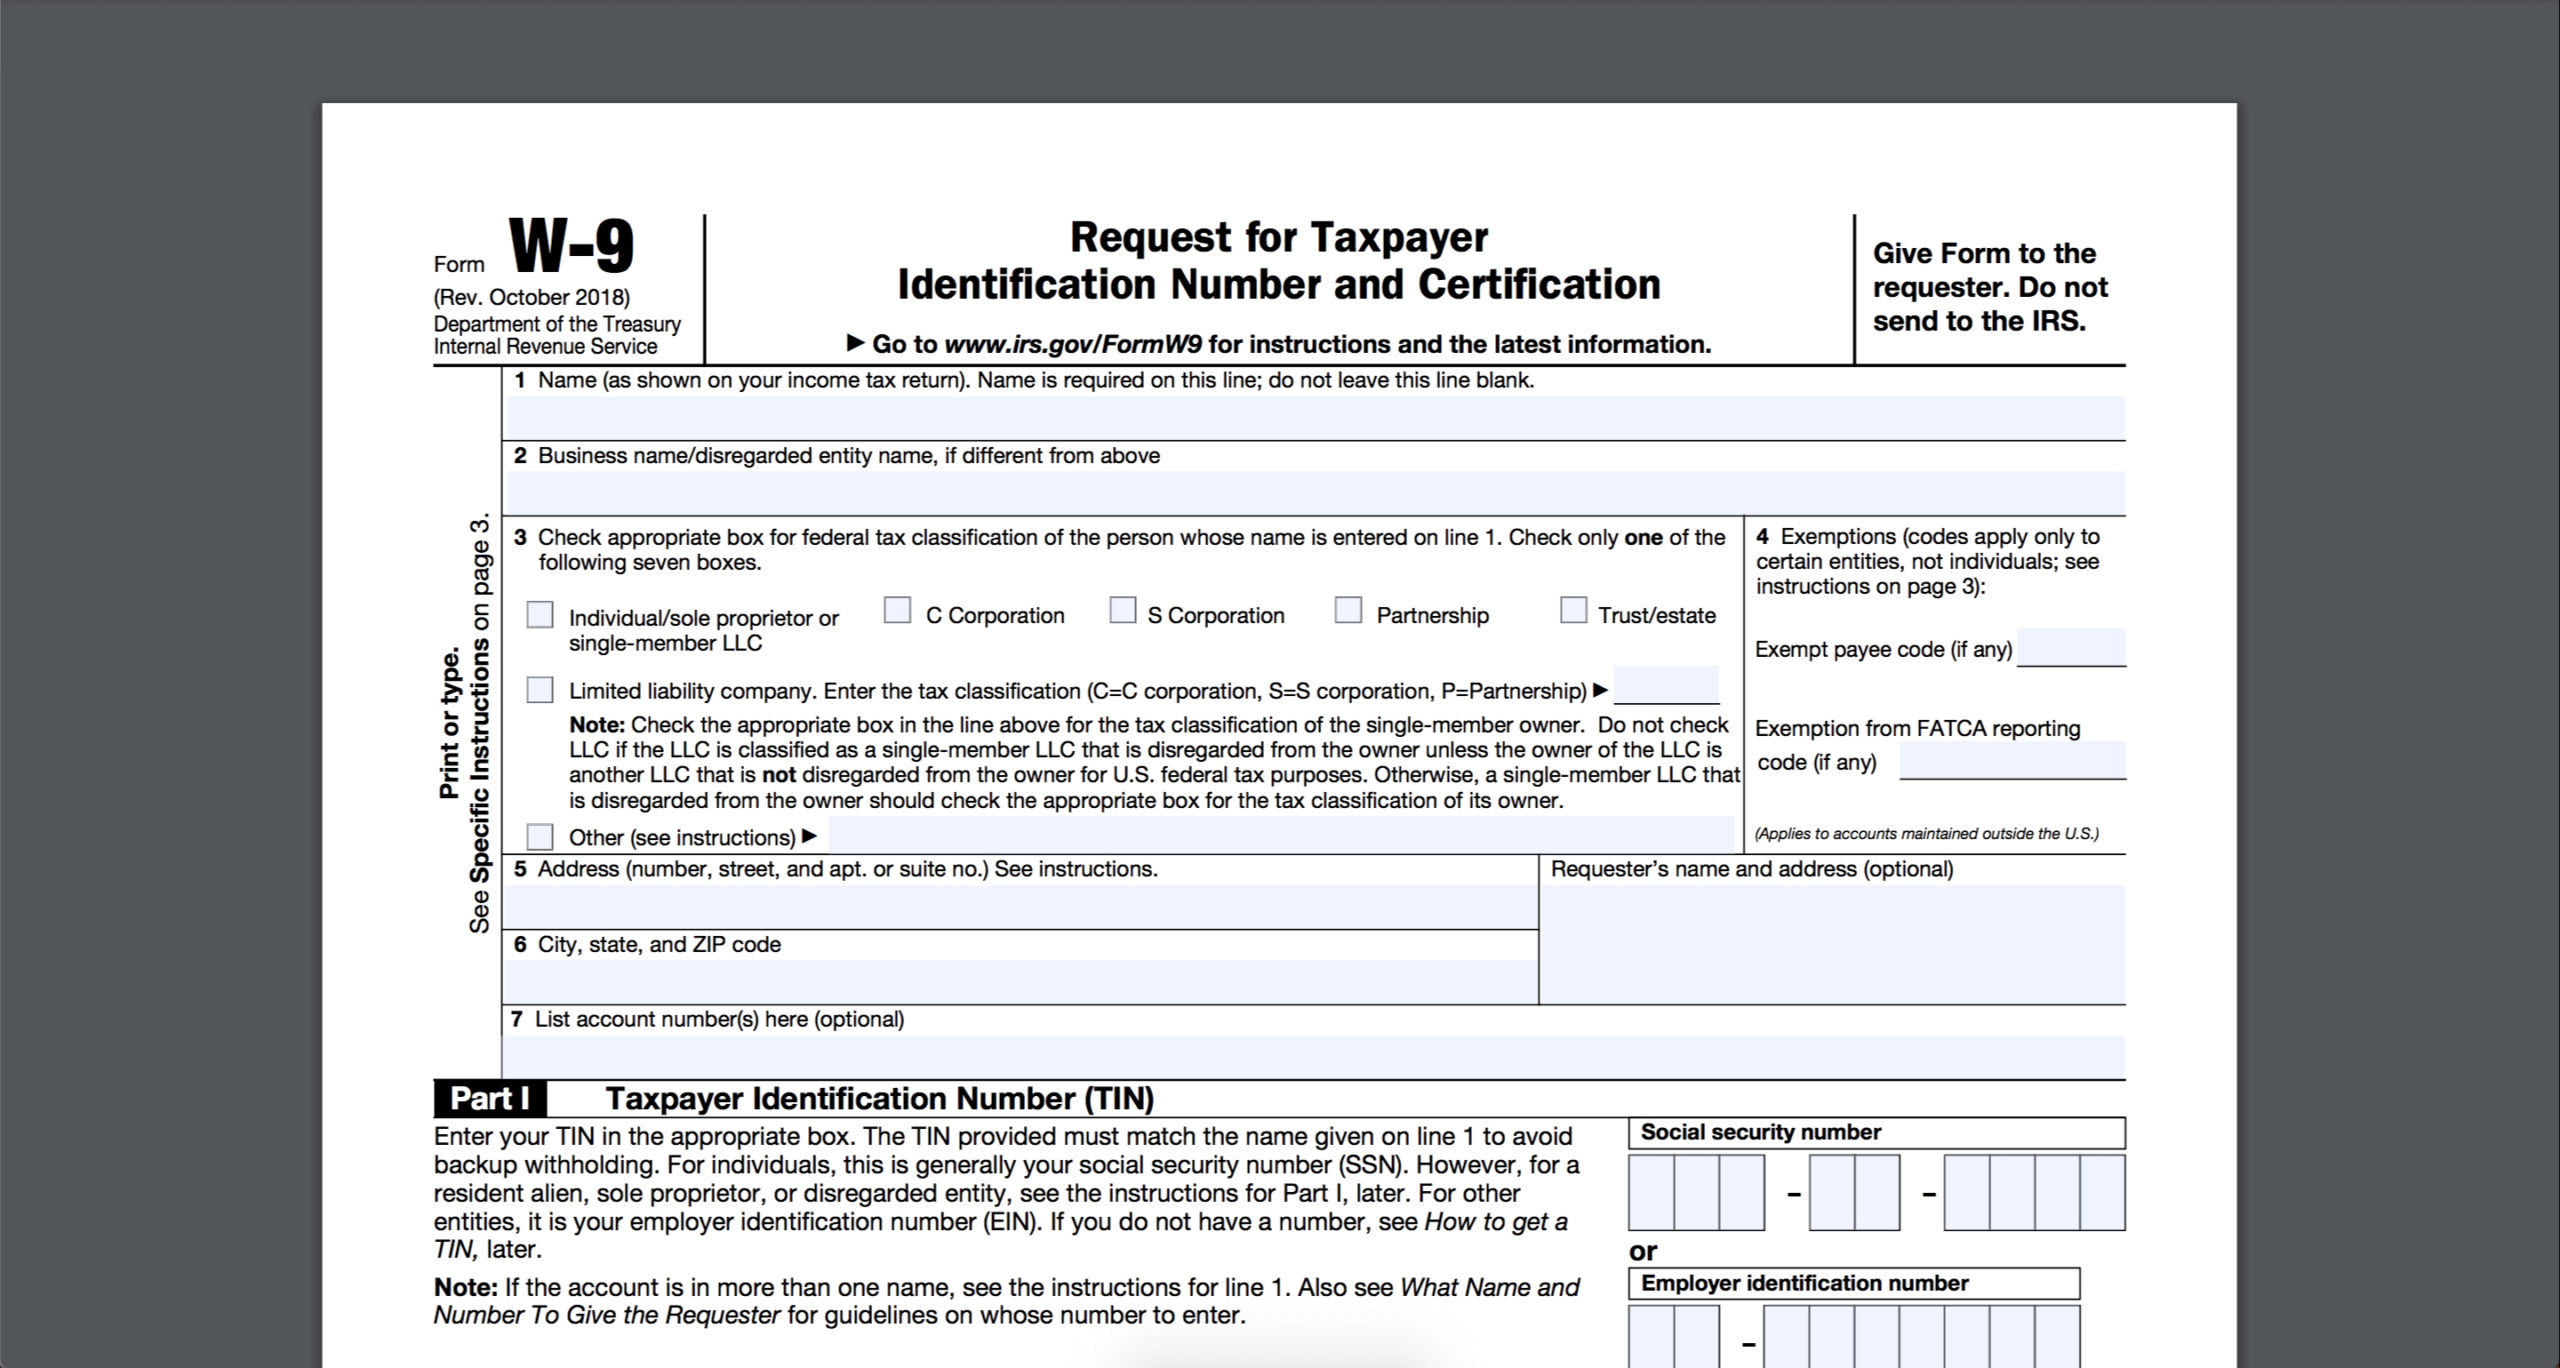 Irs W-9 Form 2021 Printable